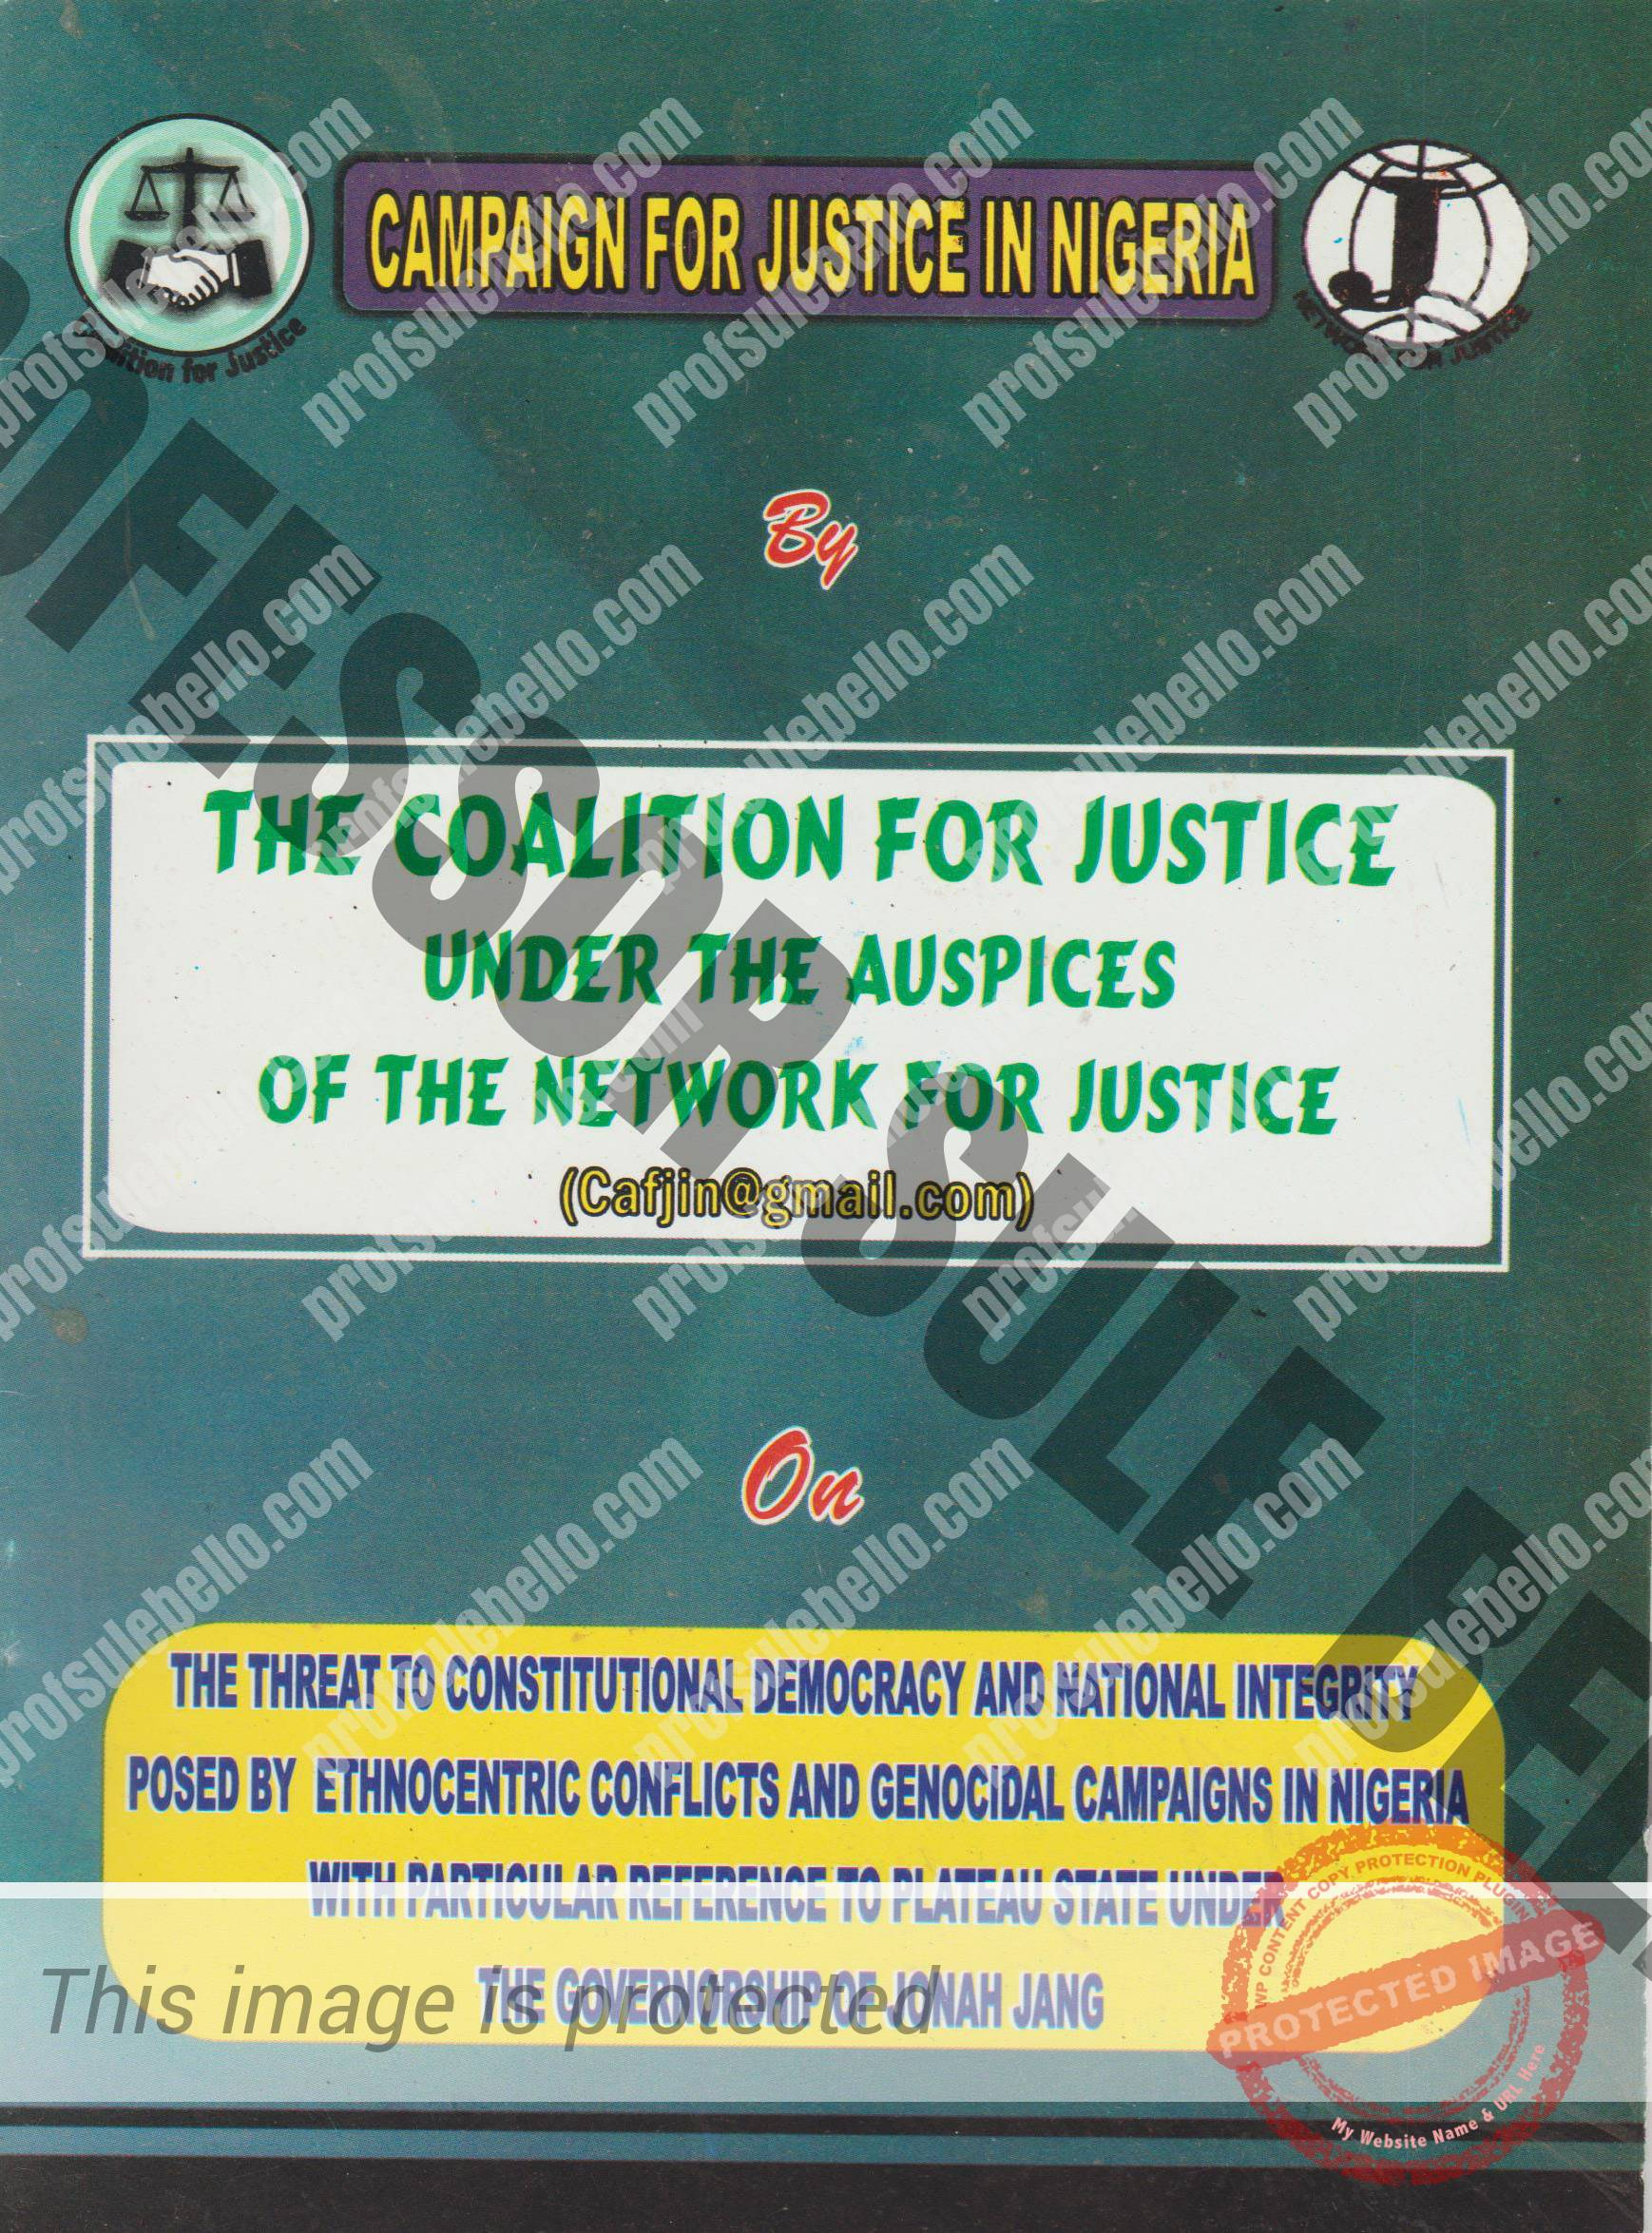 Campaing For Justice